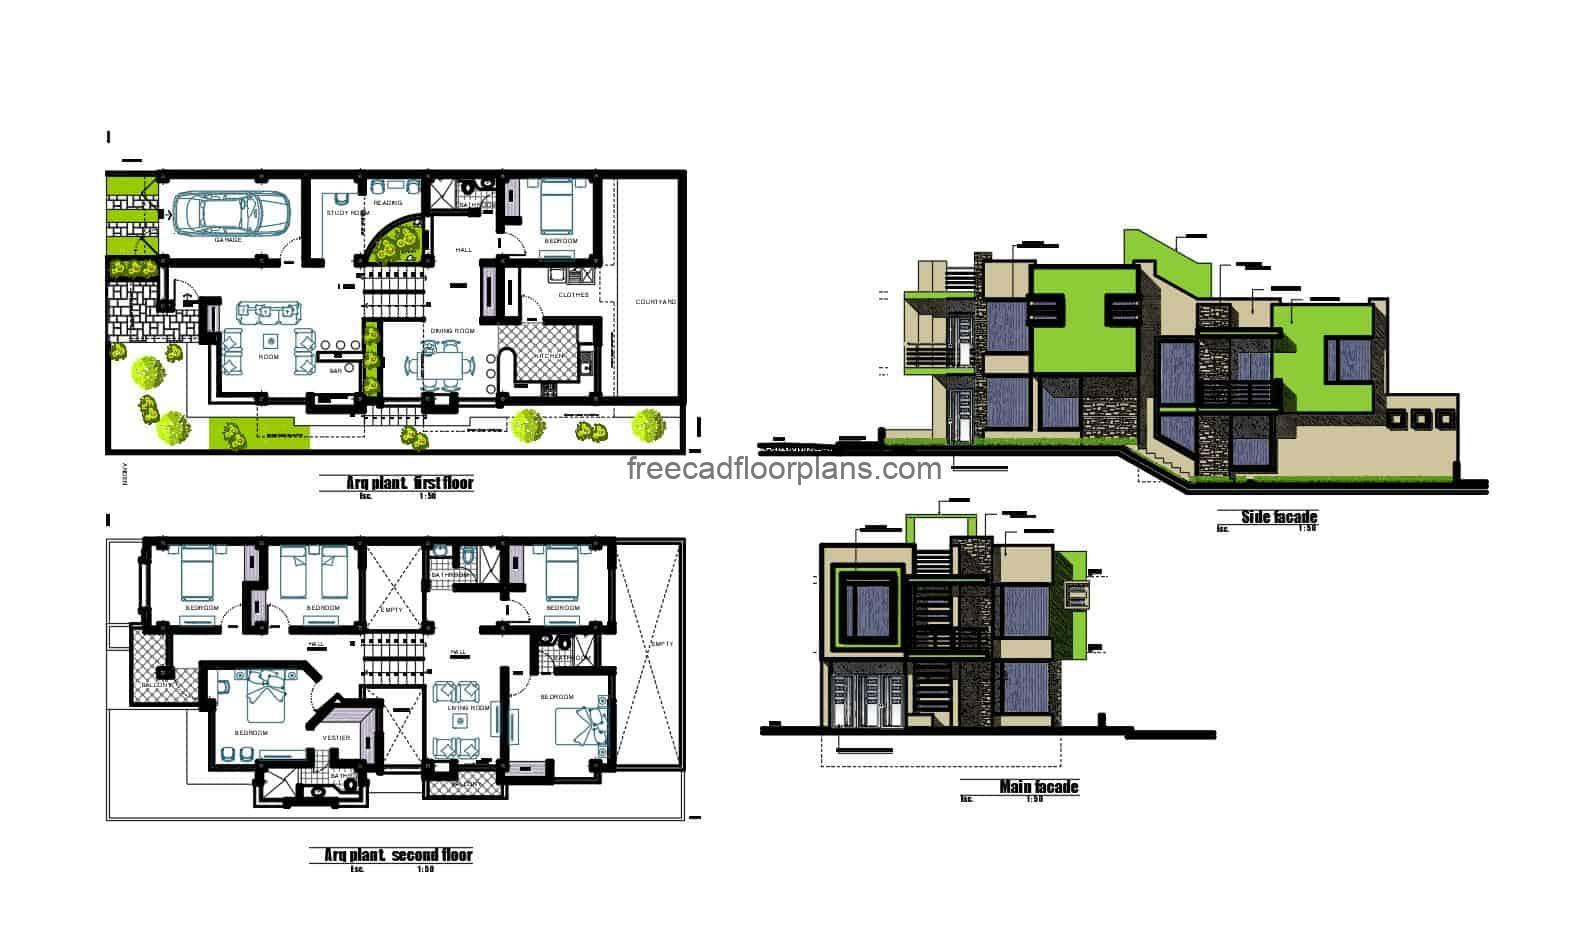 Architectural project of a modern two-storey house, furnished and detailed design with DWG blocks, several rooms in private area on second level, elevations and sections, architectural details